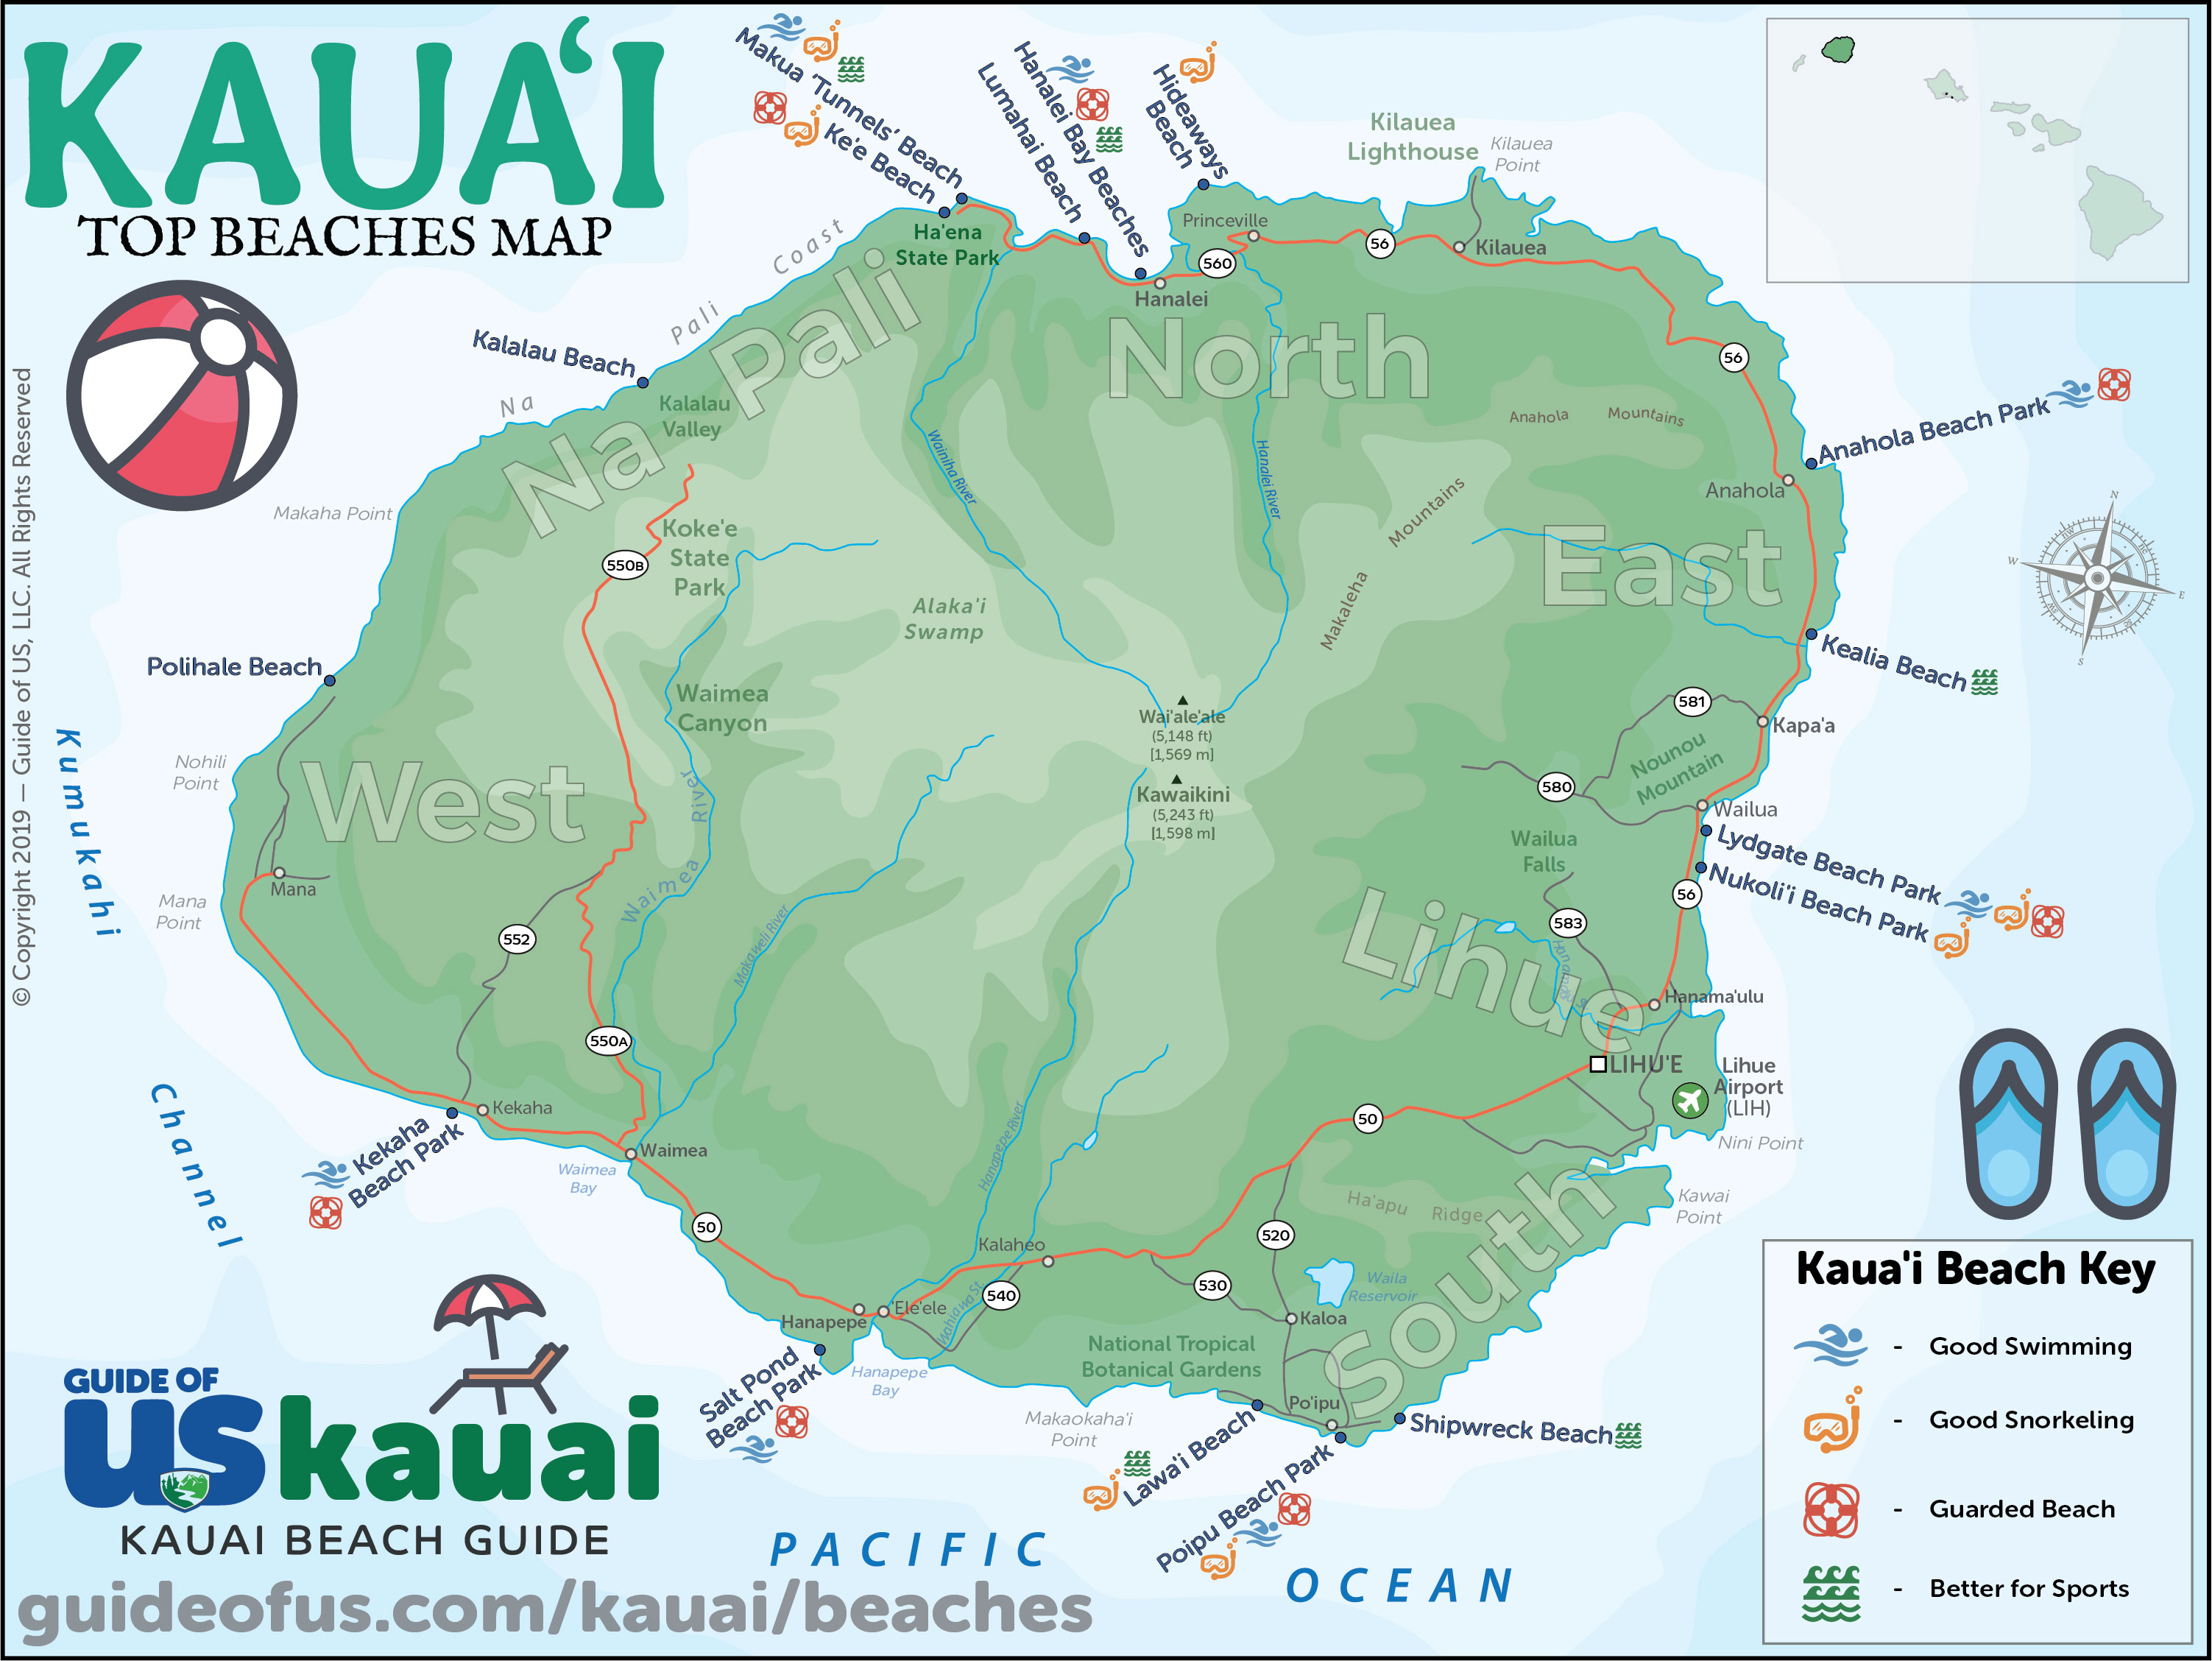 kauai surf spots map Kauai Beach Guide 10 Best Beaches On Kauai kauai surf spots map